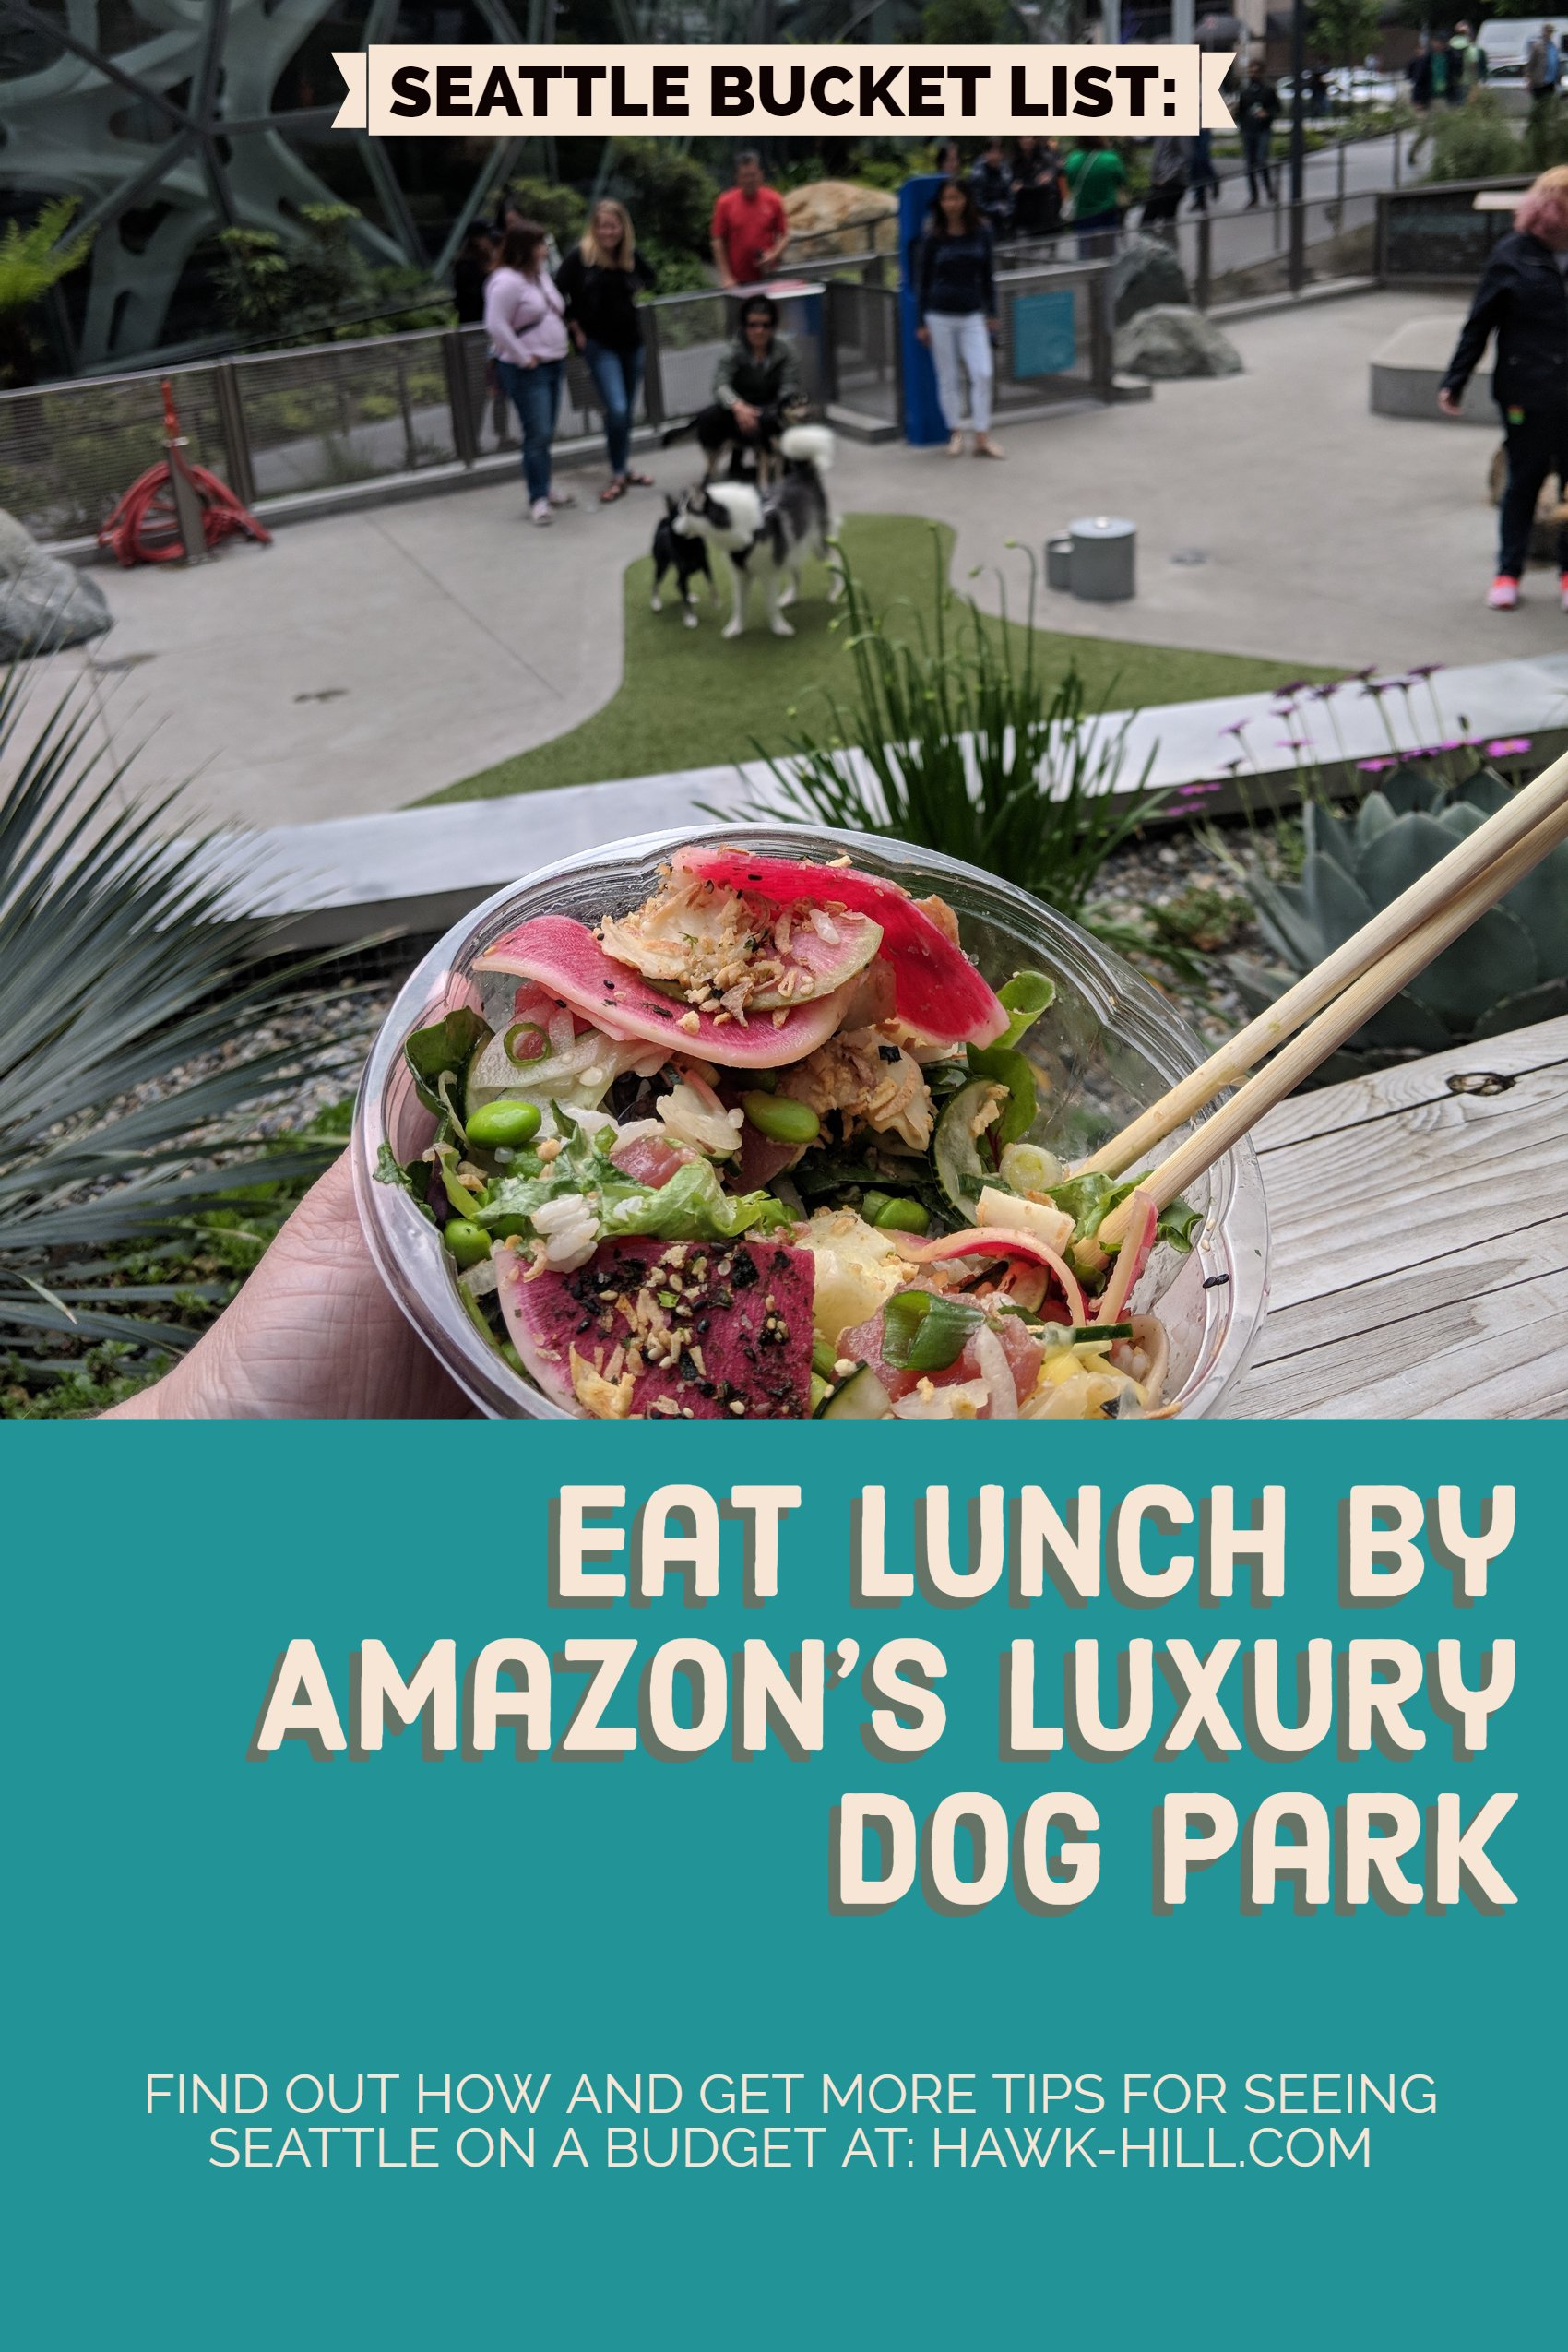 Hh lunch amazon dog park 1